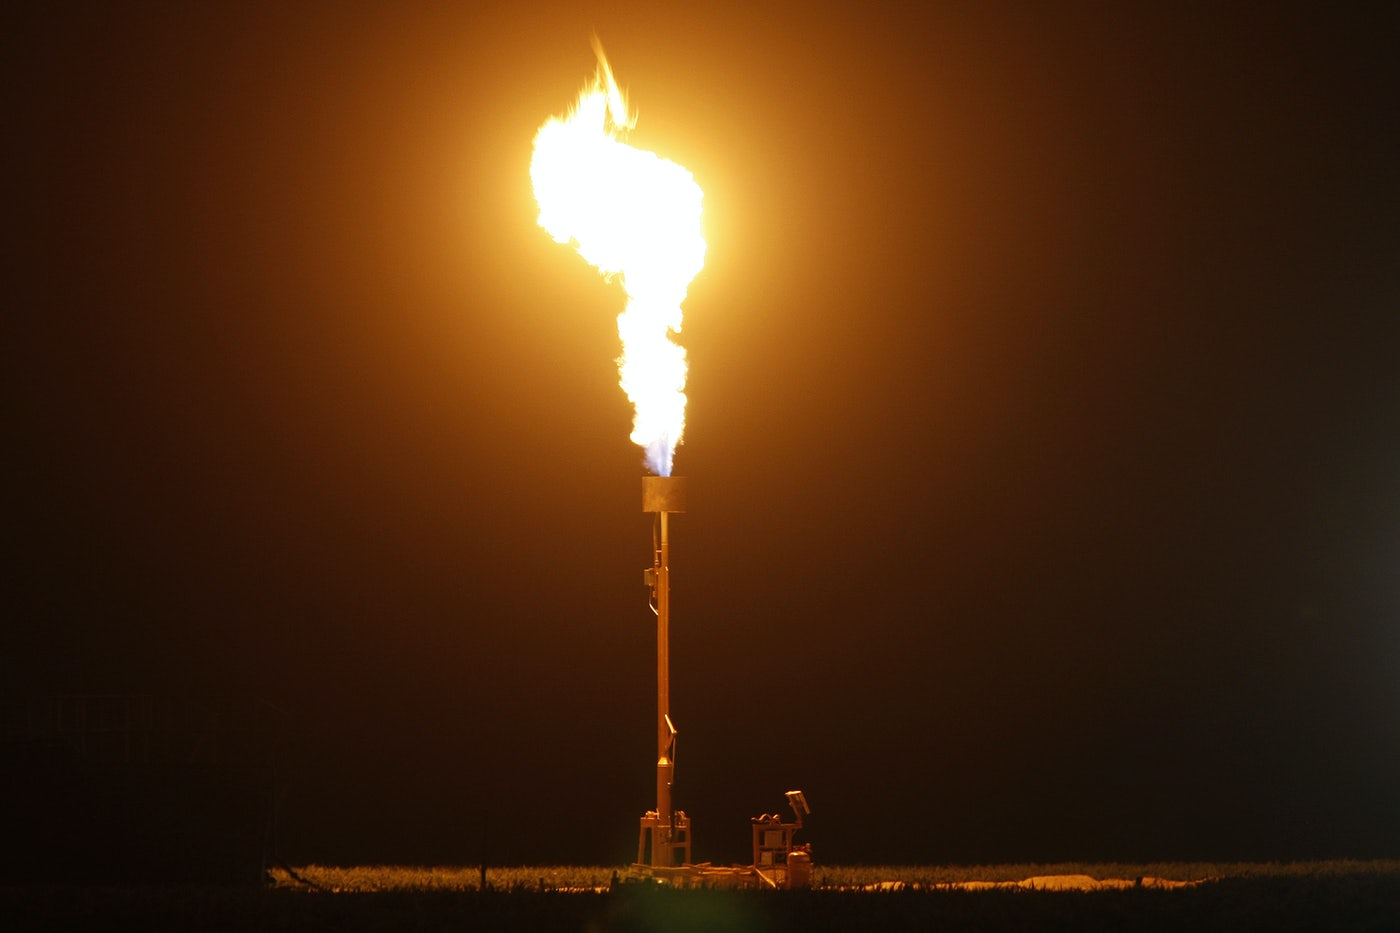 Kate Aronoff: The world is starting to acknowledge that methane is a serious problem